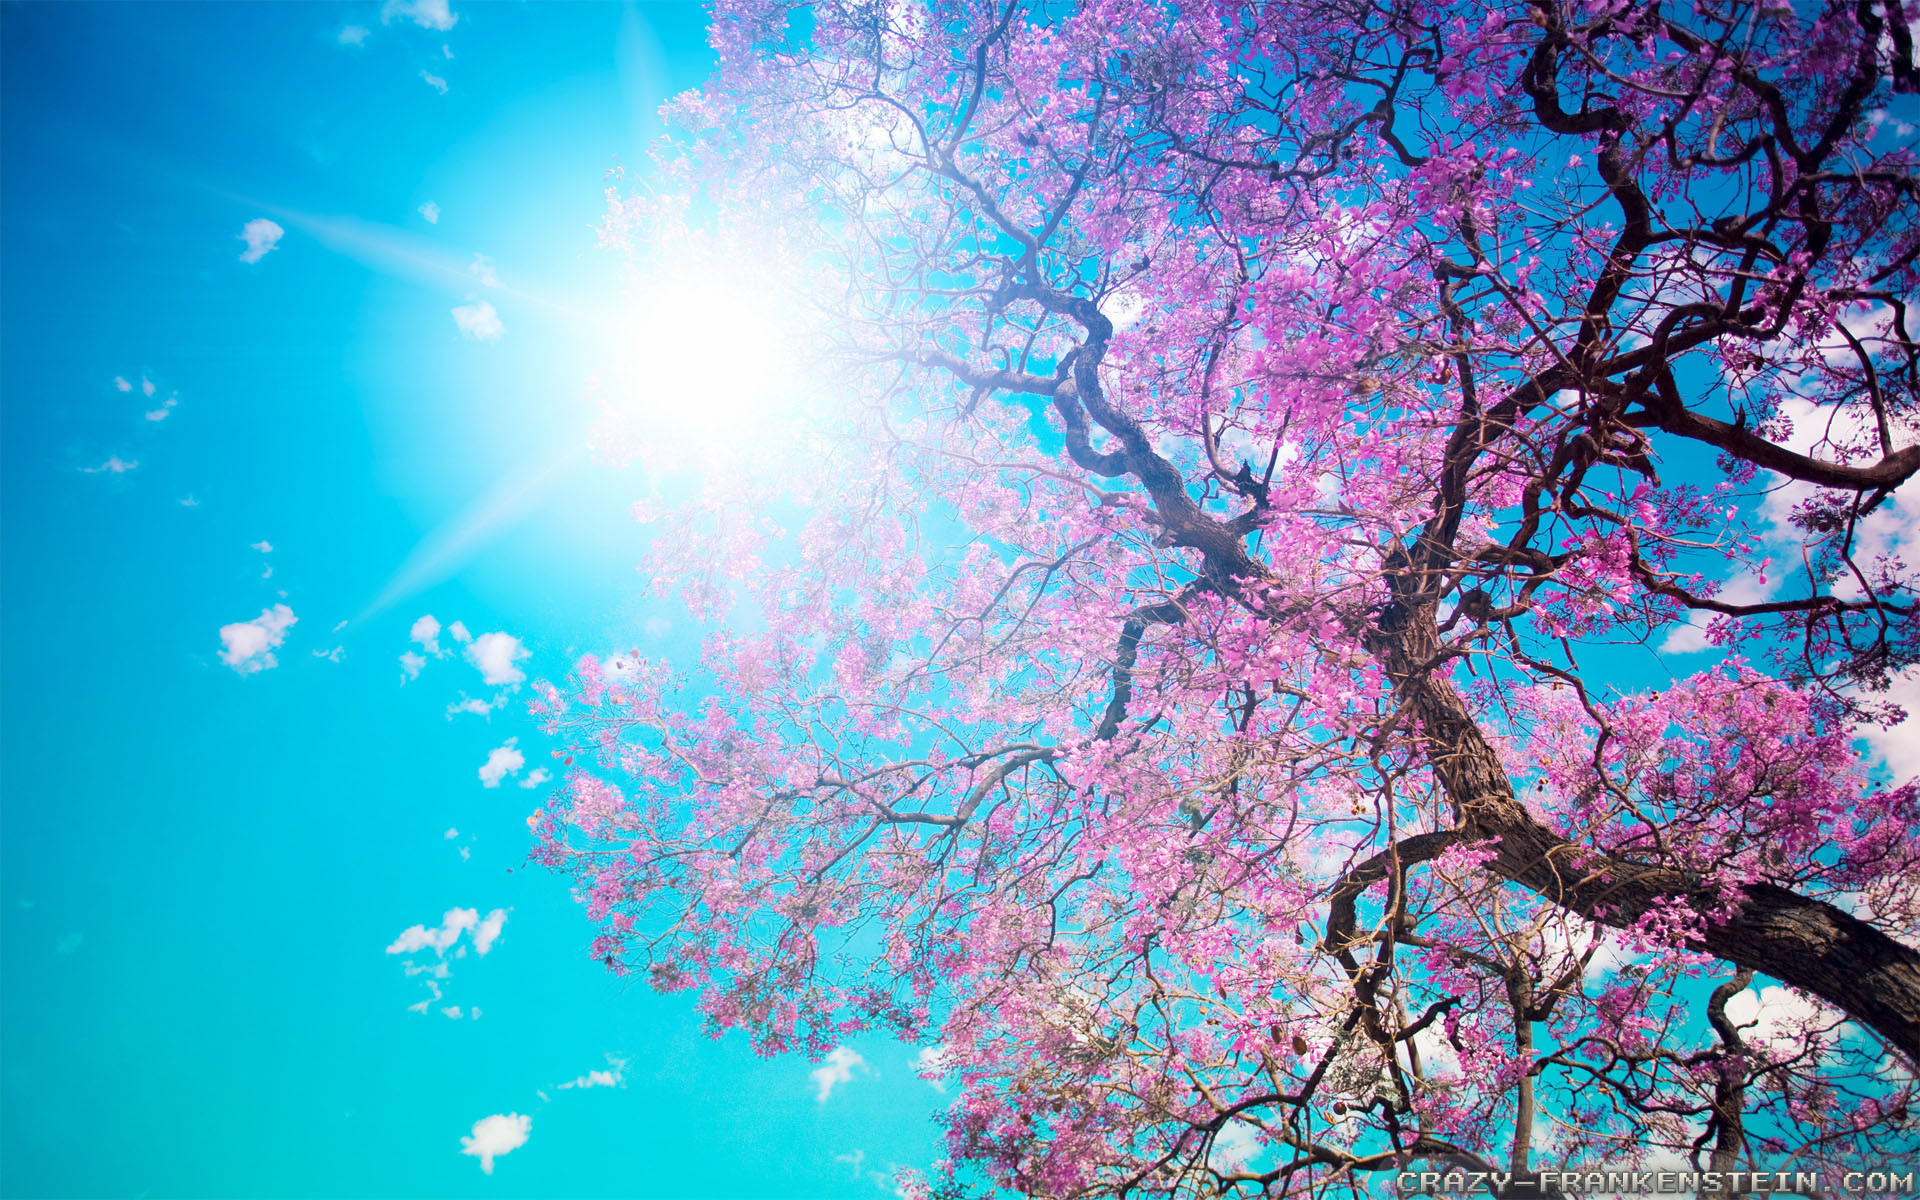 Res: 1920x1200, HD : 1280x720 | 1366x768 | 1920x1080 | 2560x1440 · Spring nature wallpapers